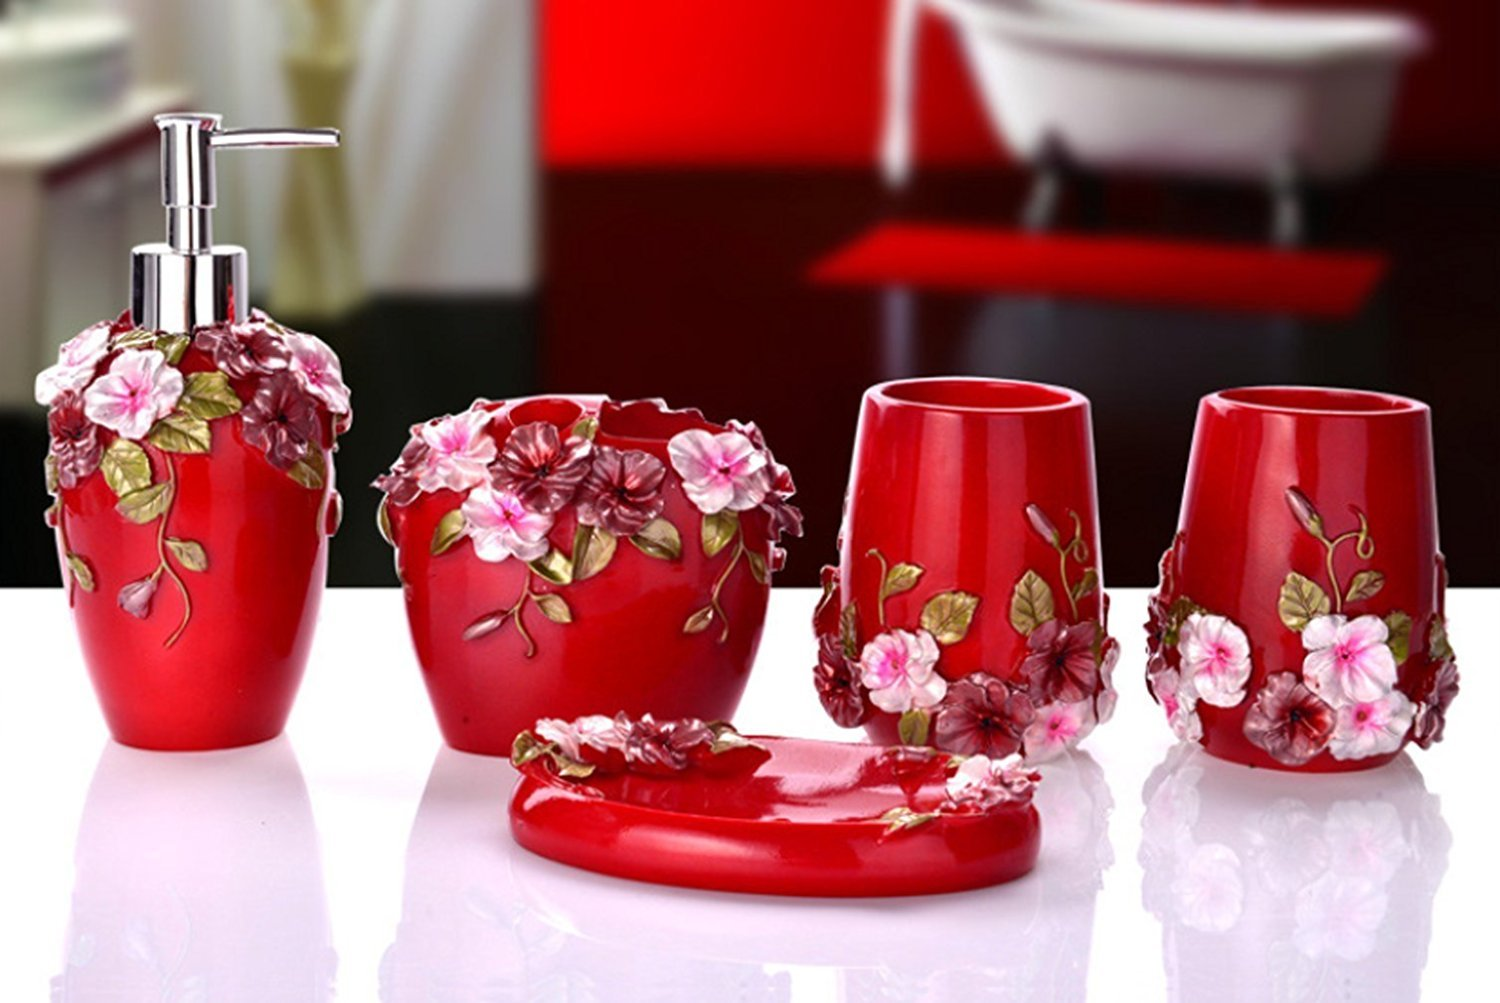 JynXos Countryside Resin Bathroom Accessories Set 5pcs Gift Wrapping Include Soap Dispenser/Toothbrush Holder/Tumbler/Soap Dish